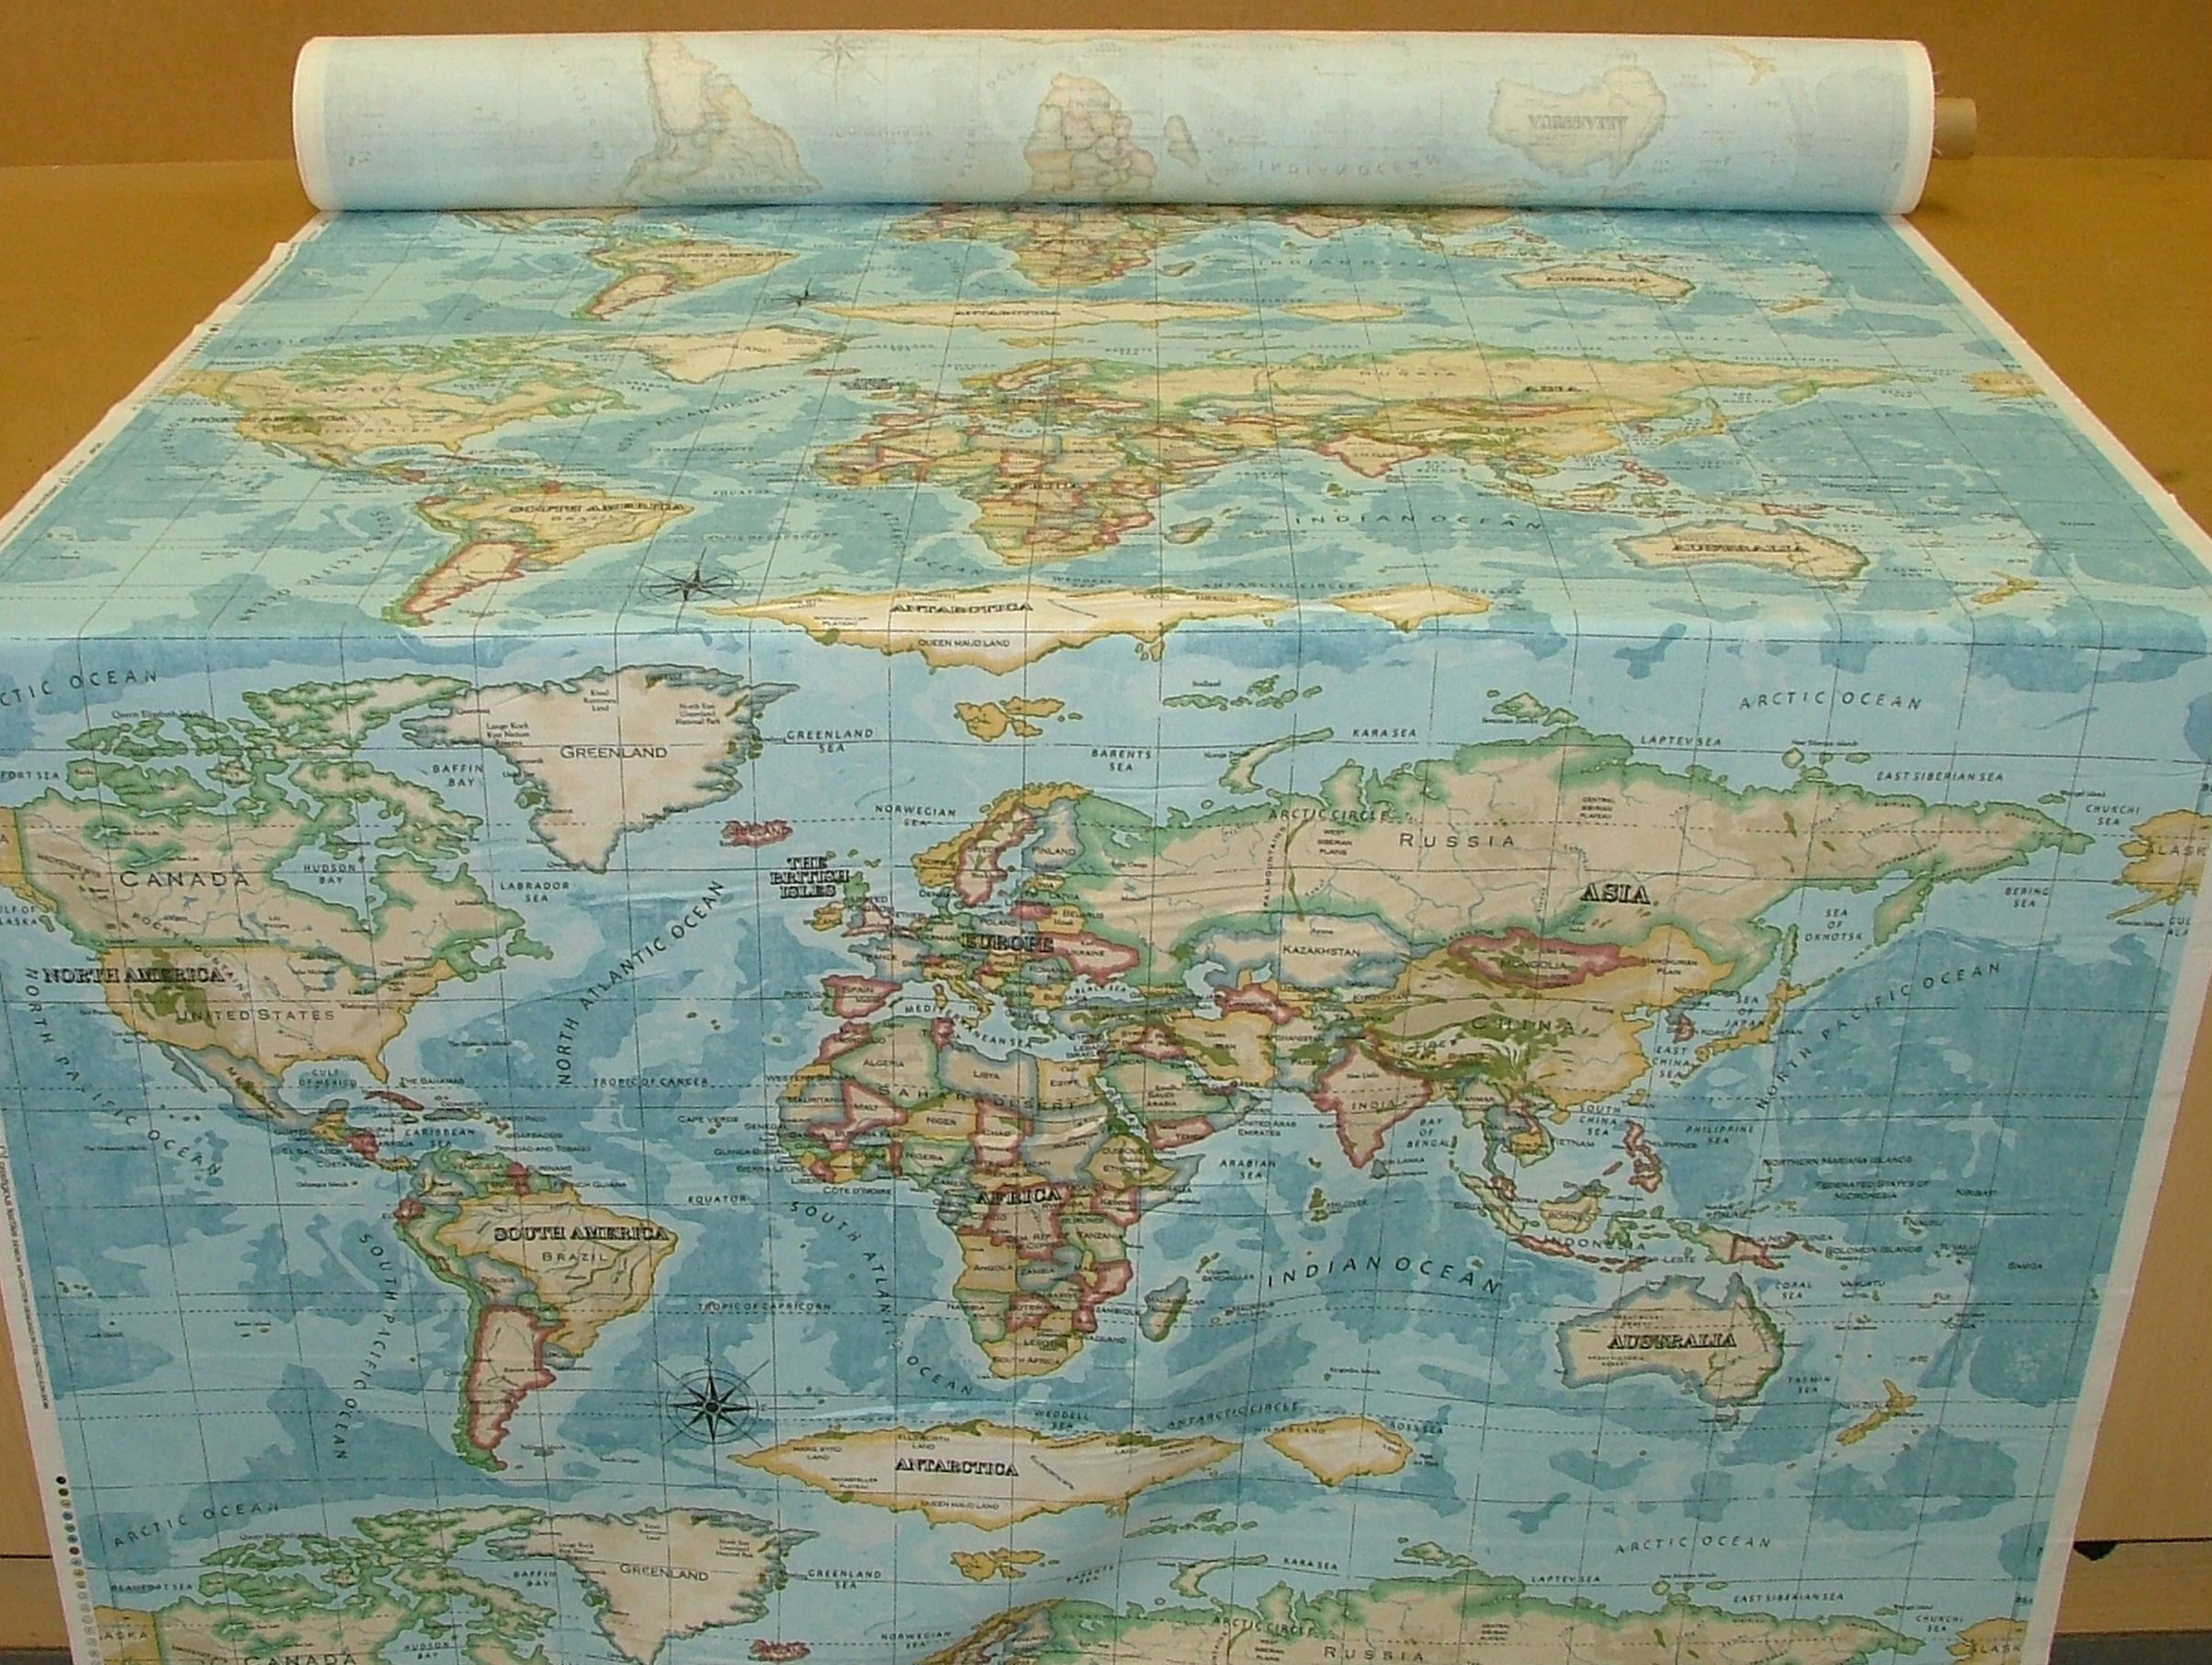 World map upholstry range prestigious atlas world map azure world map upholstry range prestigious atlas world map azure prestigious designer fabric gumiabroncs